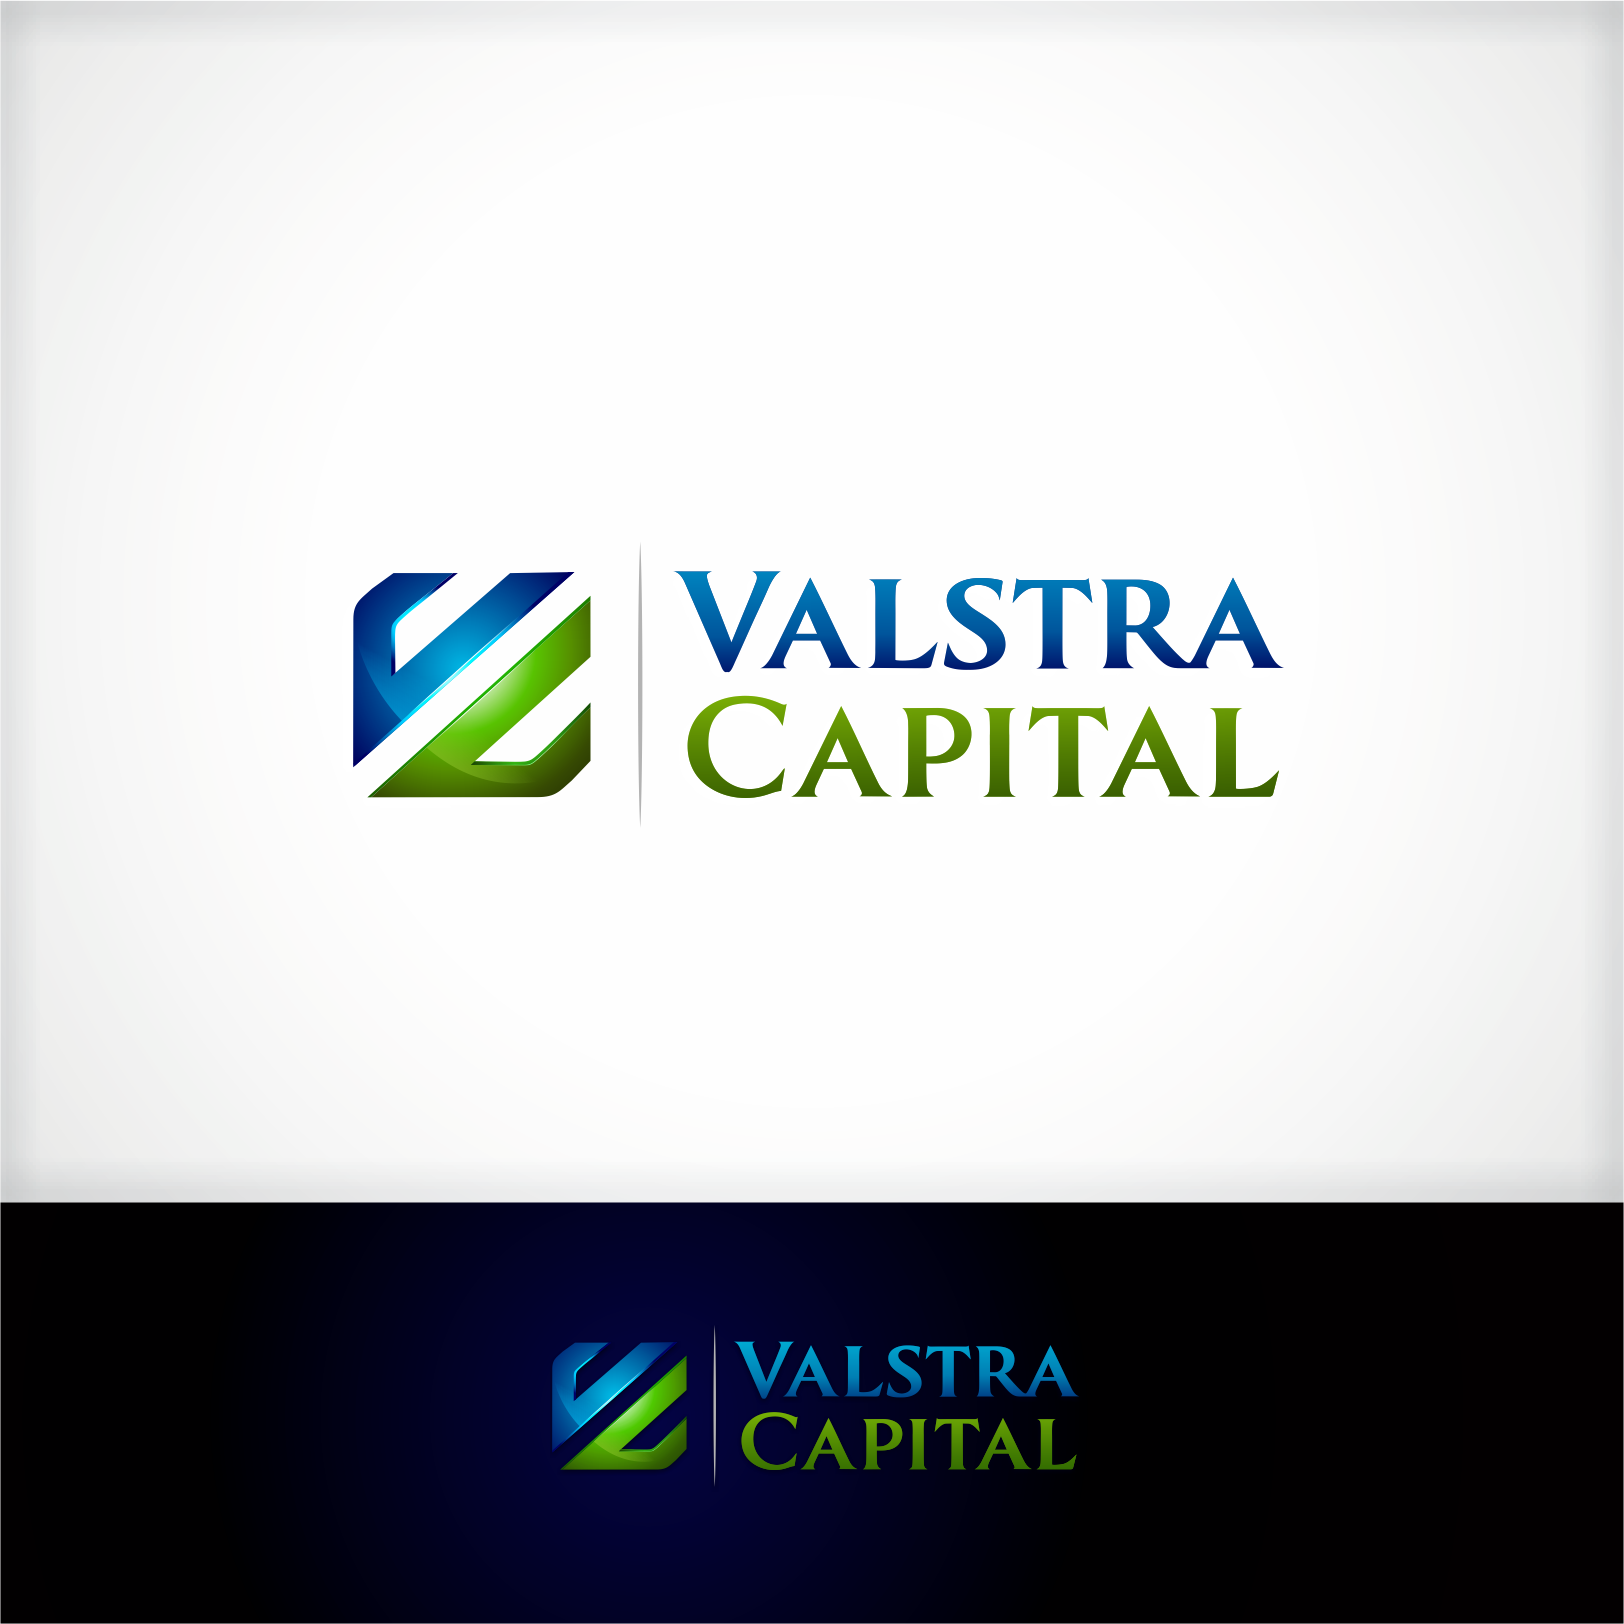 Logo Design - Valstra Capital Inc. - Financial Services Logo